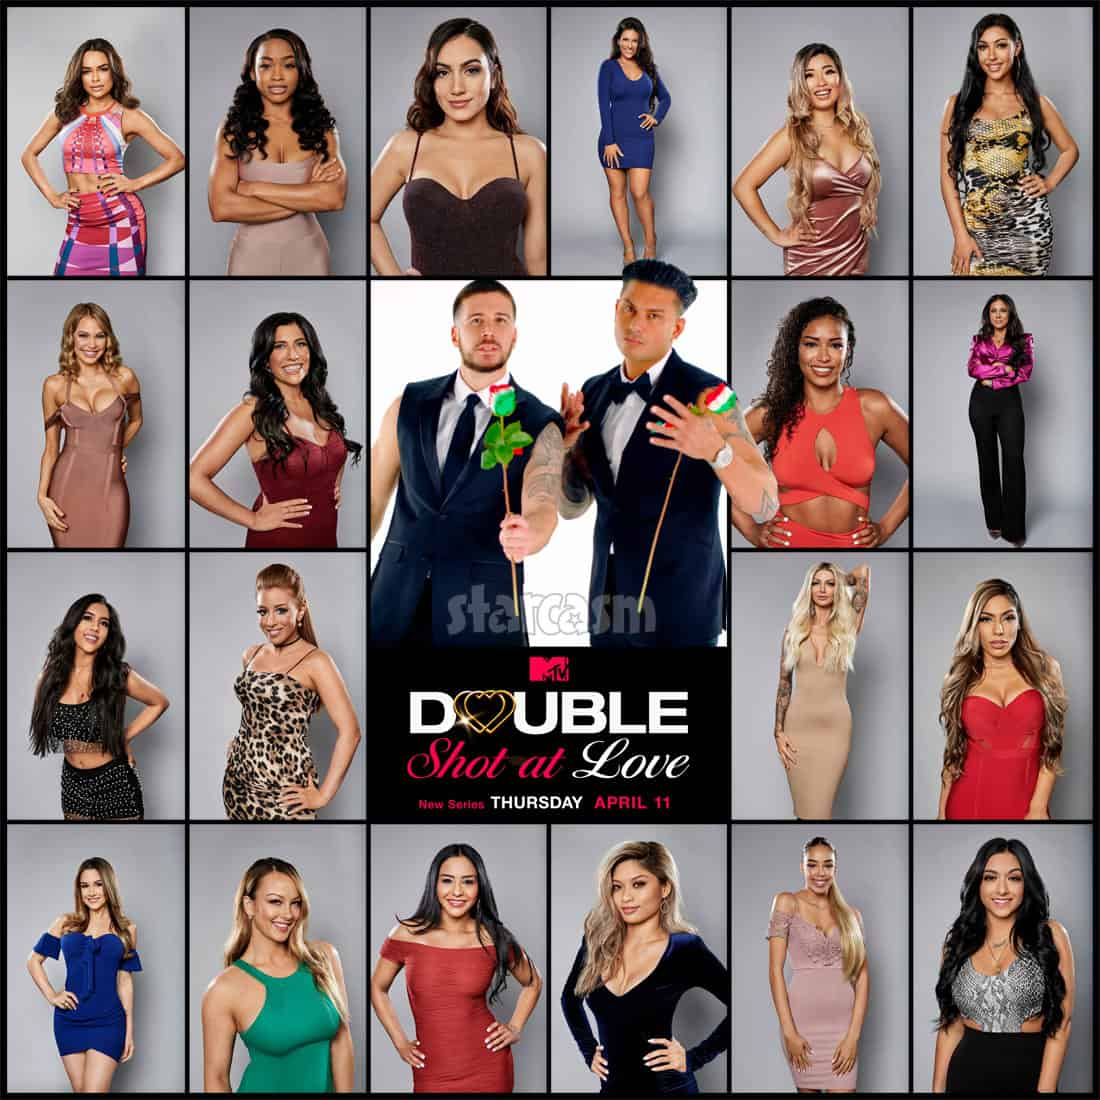 MTV Double Shot At Love With Pauly D and Vinny cast